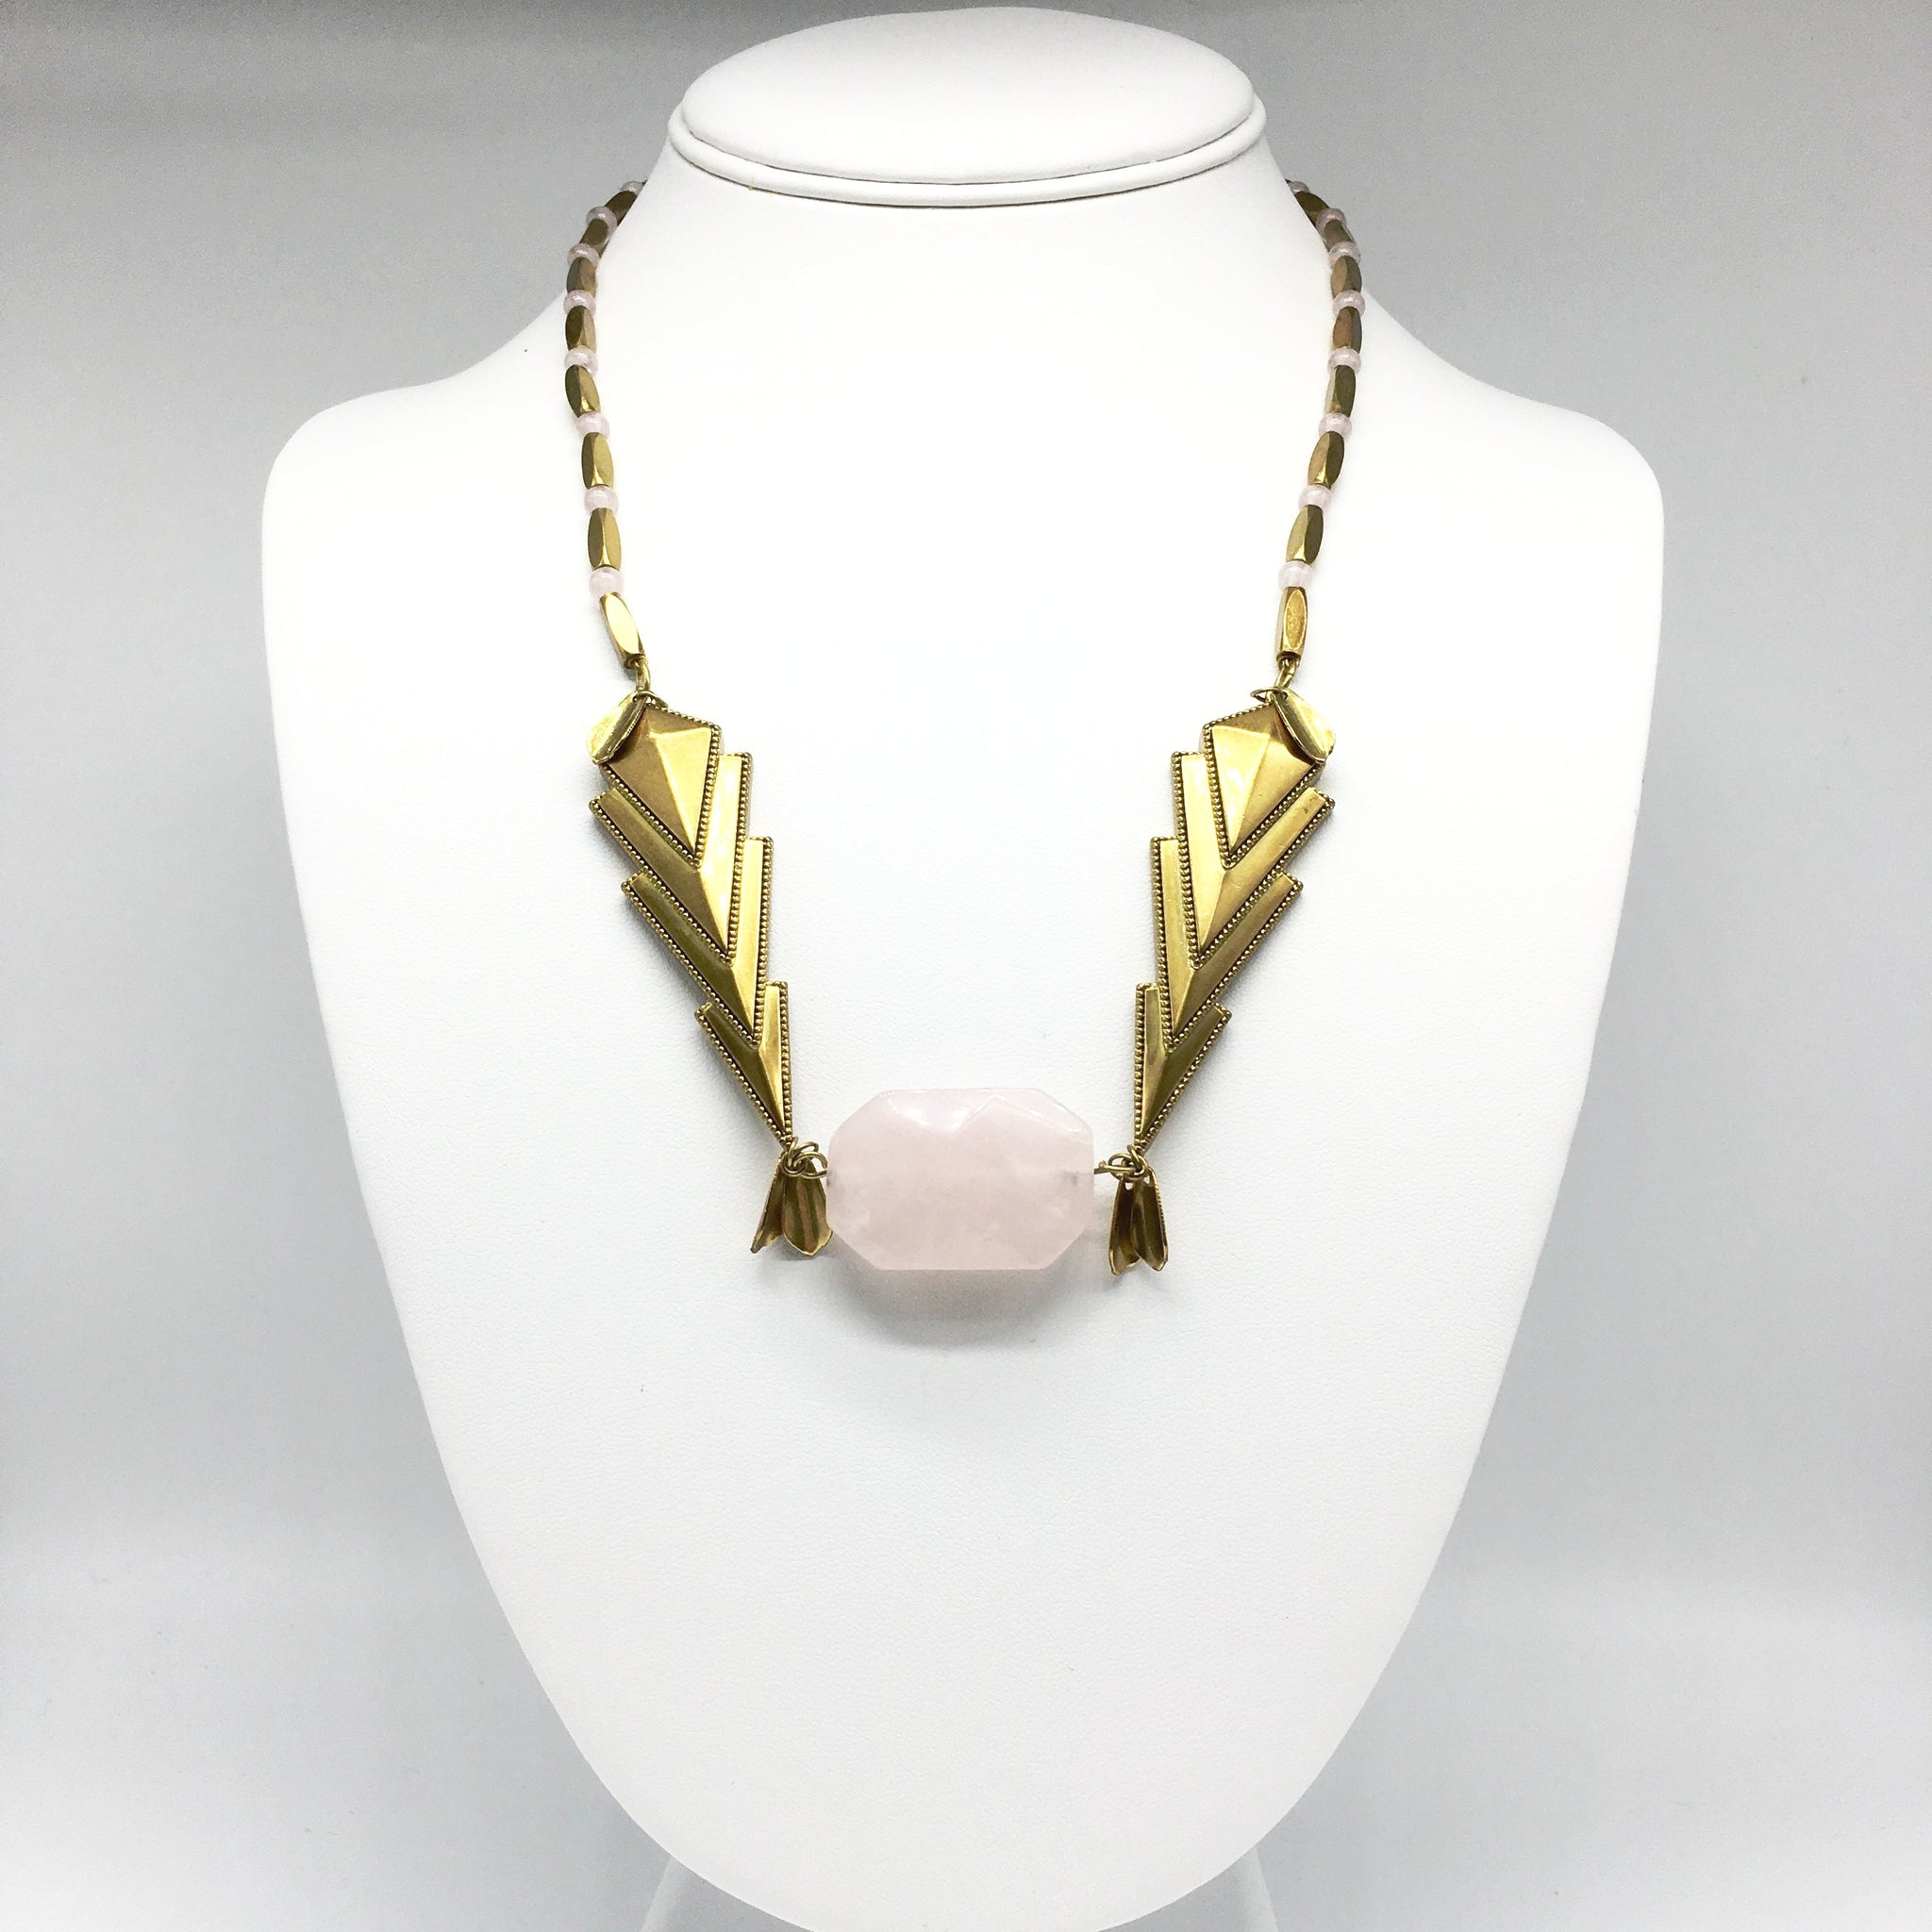 Eastern Elegance Bronze and Rose Quartz Necklace